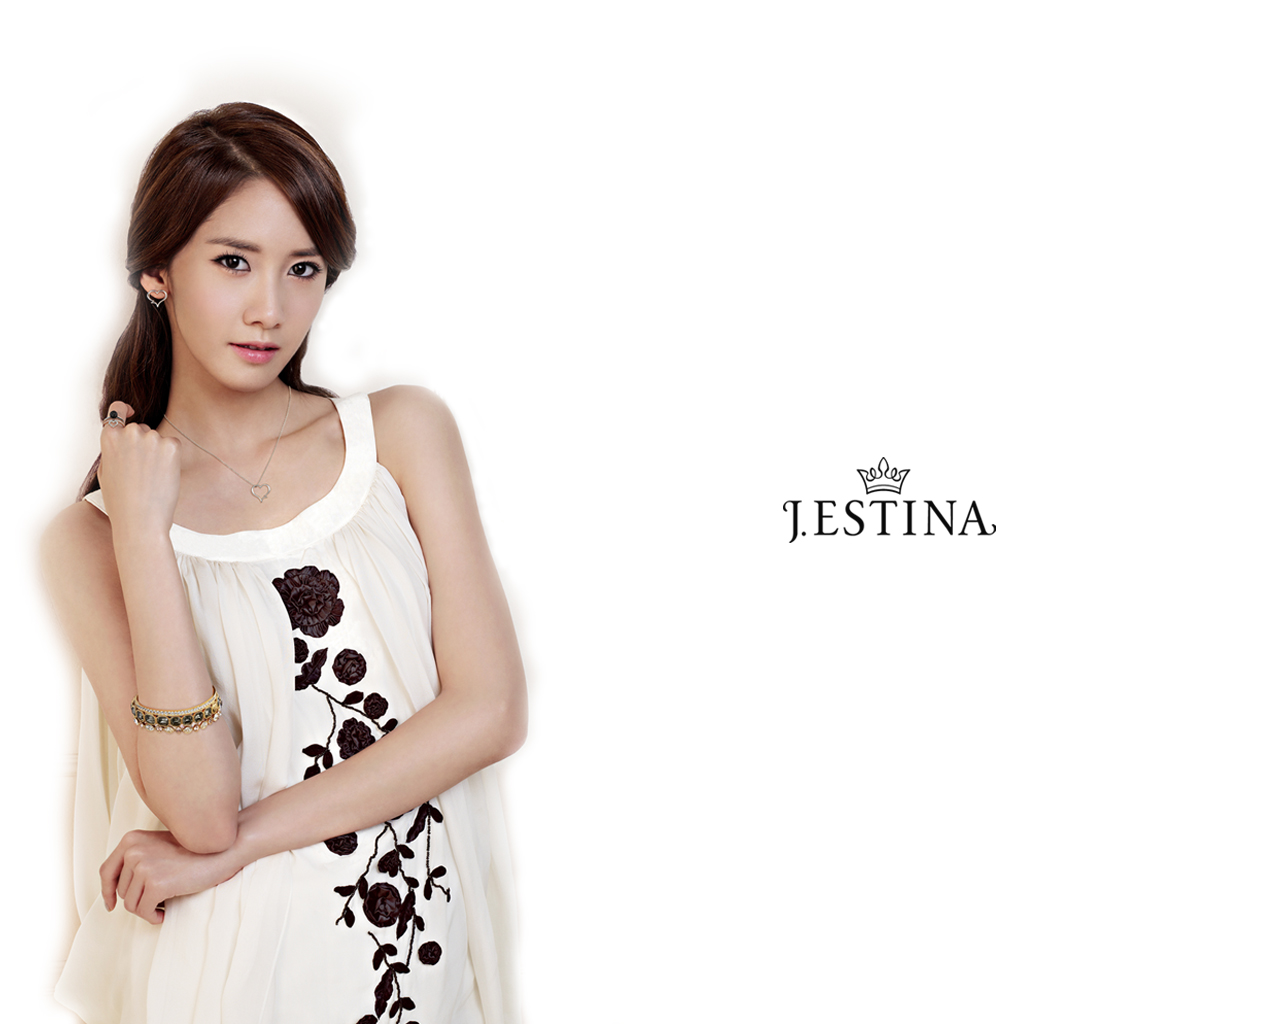 Girls' Generation Yoona J.Estina - girls-generation-snsd wallpaper